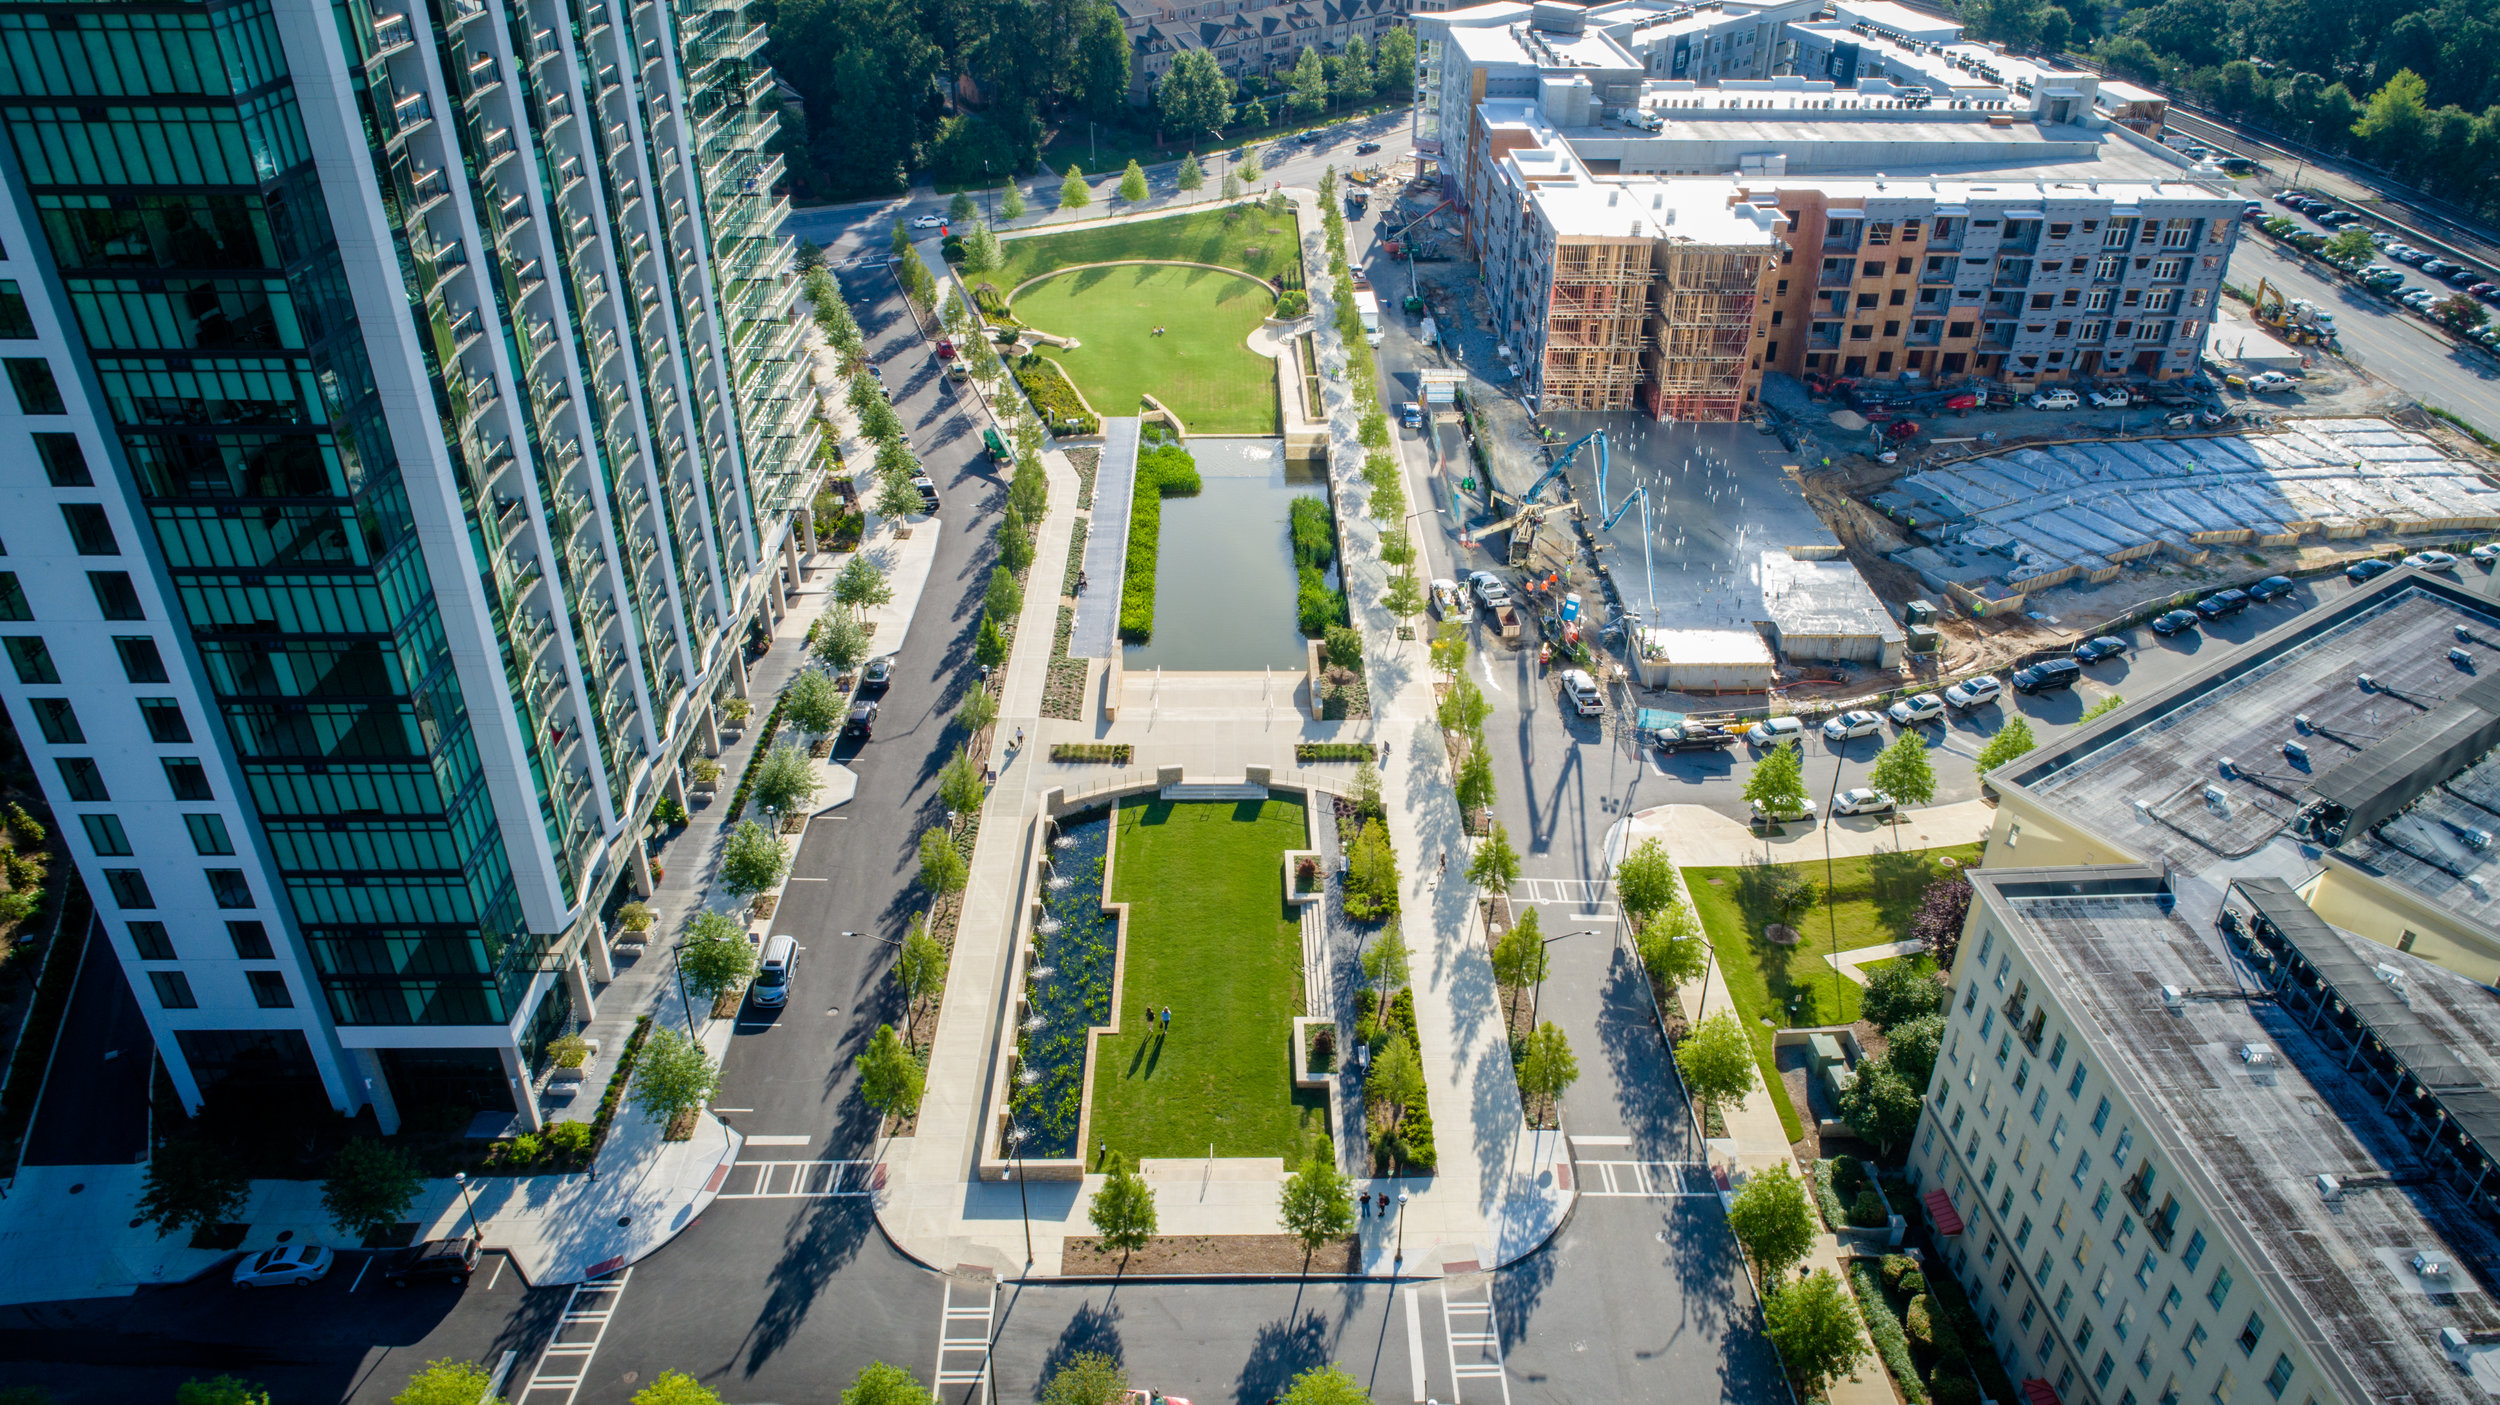 City Place/Marie Sims Park  in Buckhead, GA by HGOR. Photo by Ralph Daniel Photography.